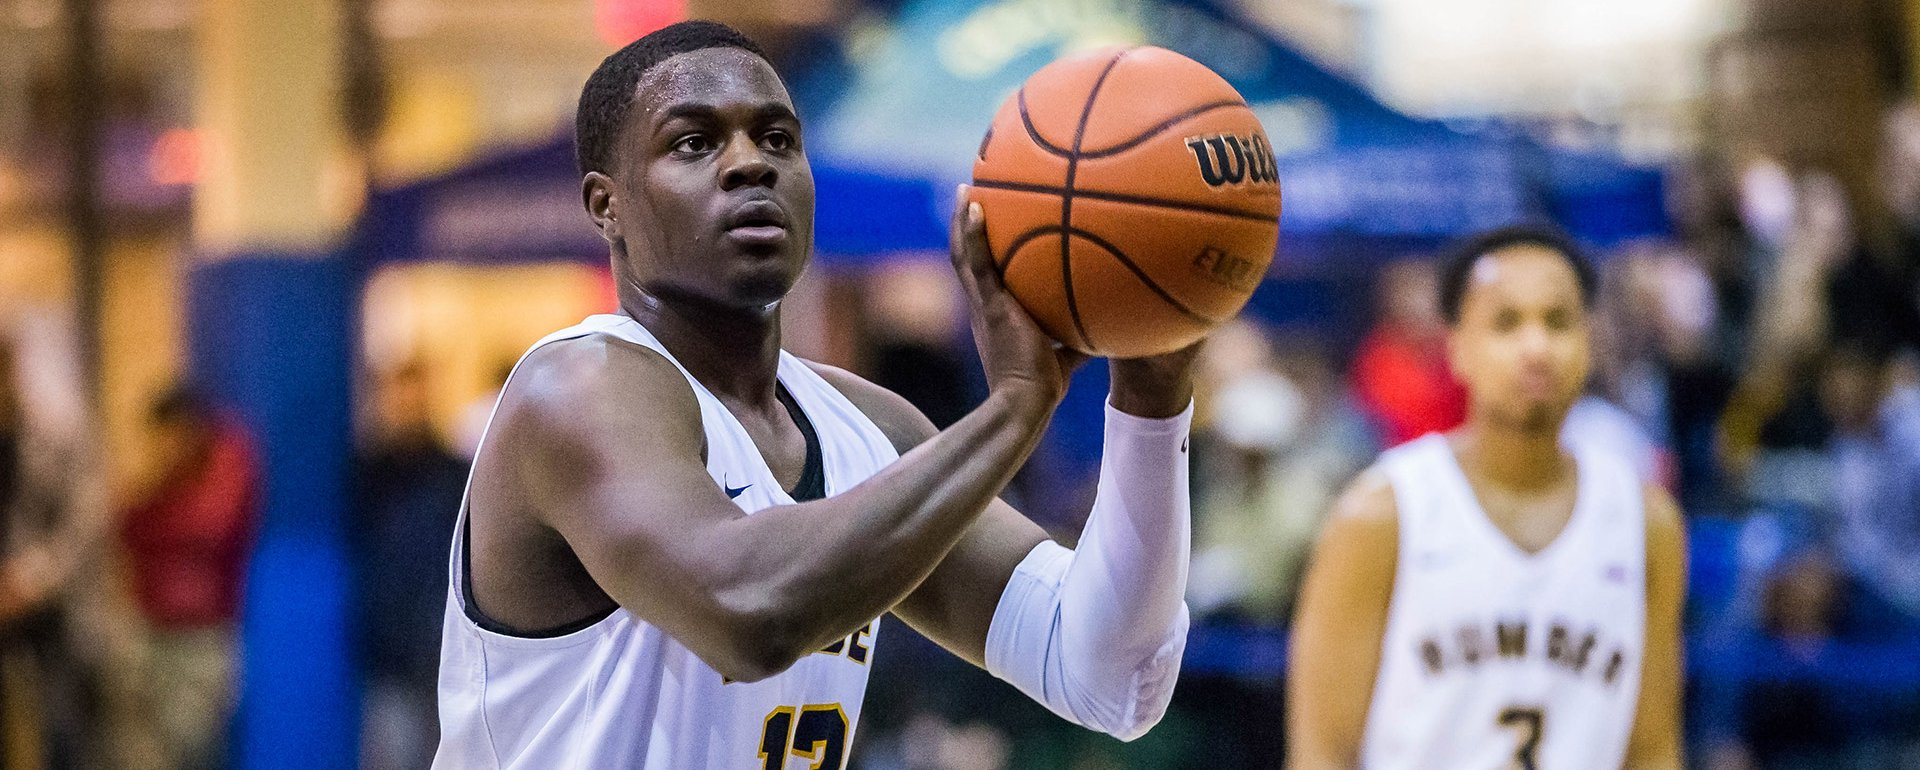 Humber Basketball player about to shoot the ball during a game